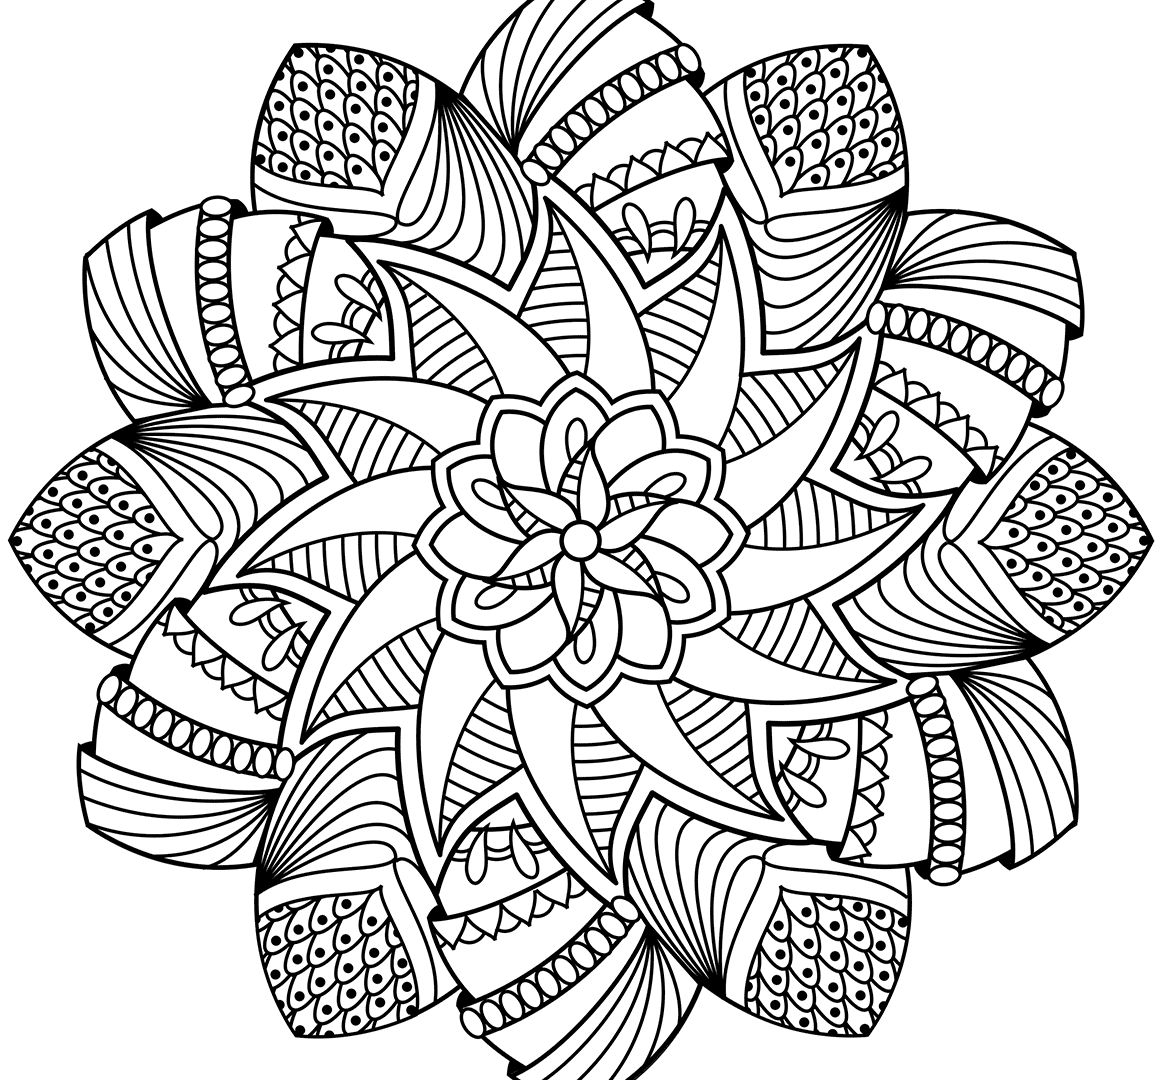 free mandalas to print and color don39t eat the paste alien mandala to print and color mandalas and color free to print